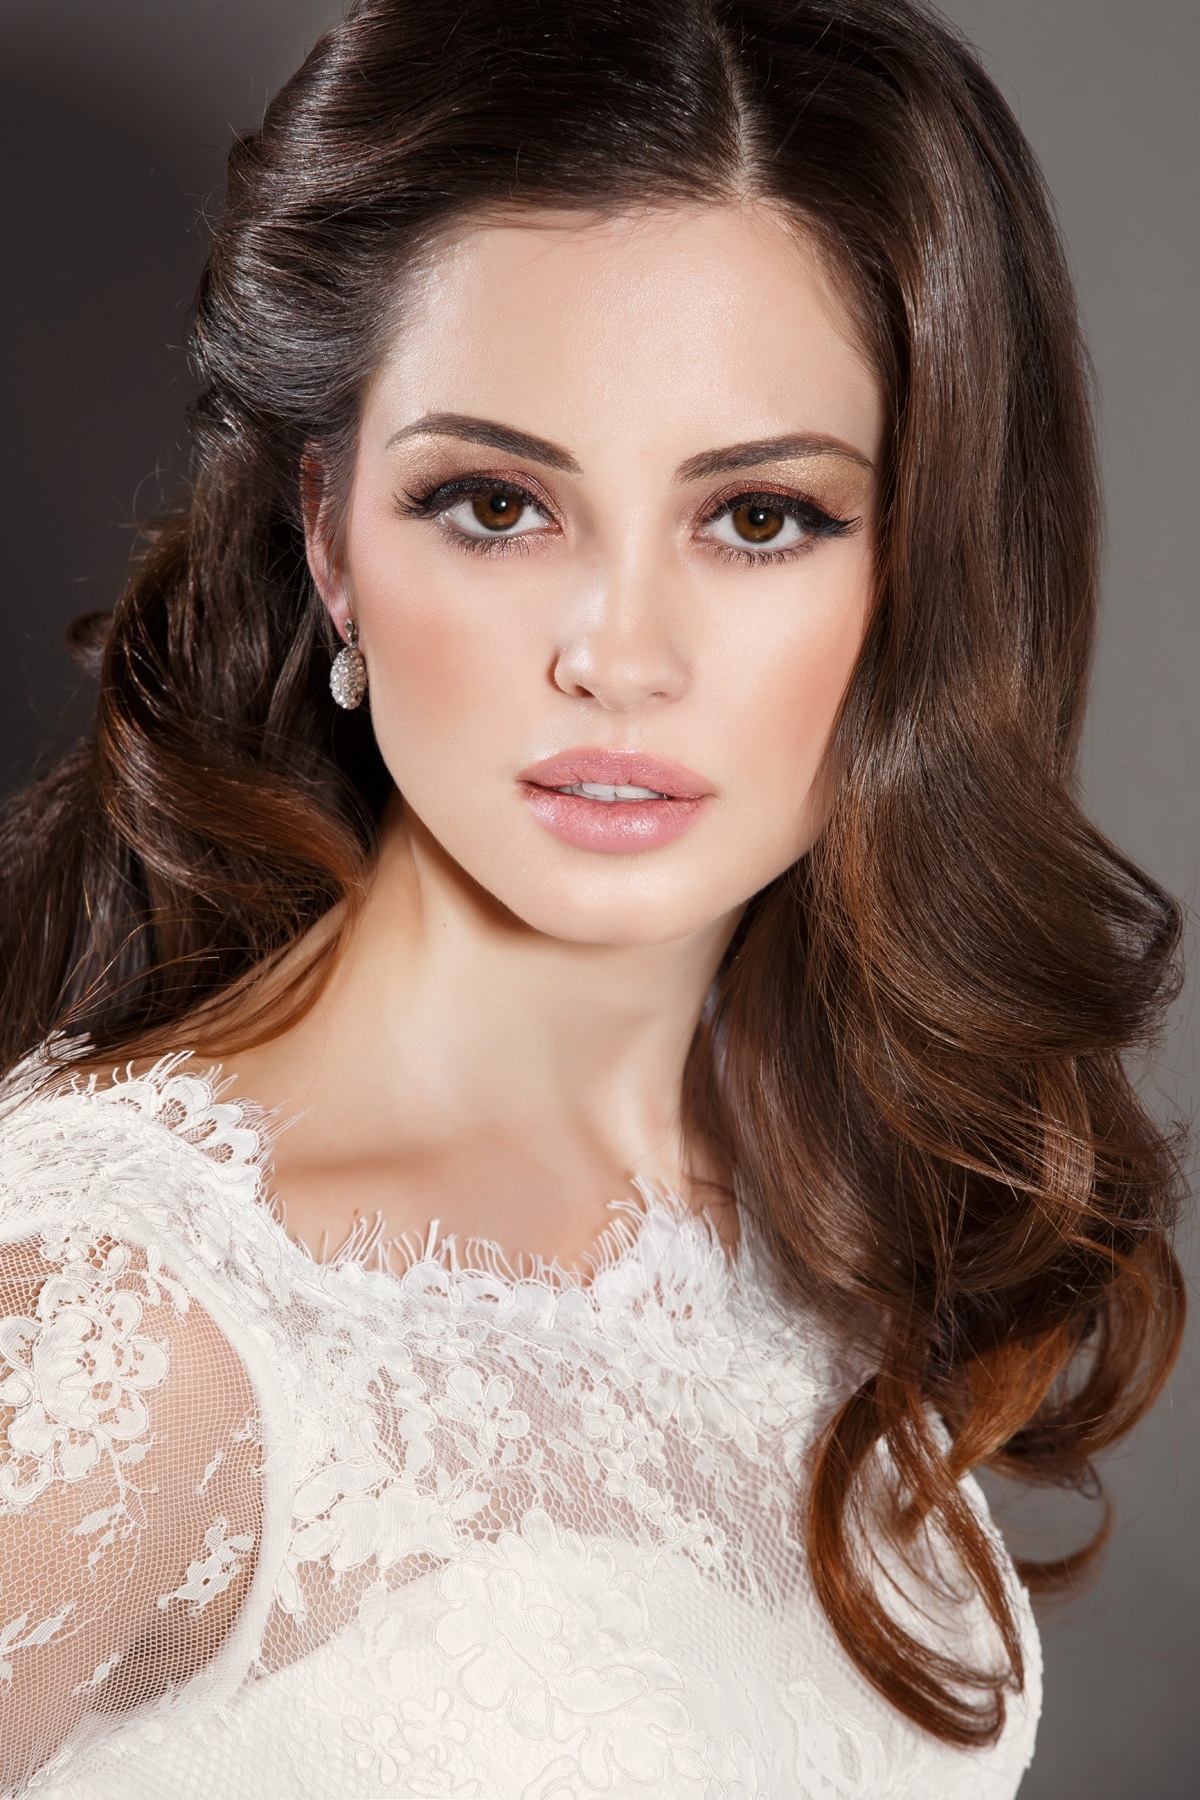 bridal-hairstyles-for-square-faces-10.jpg